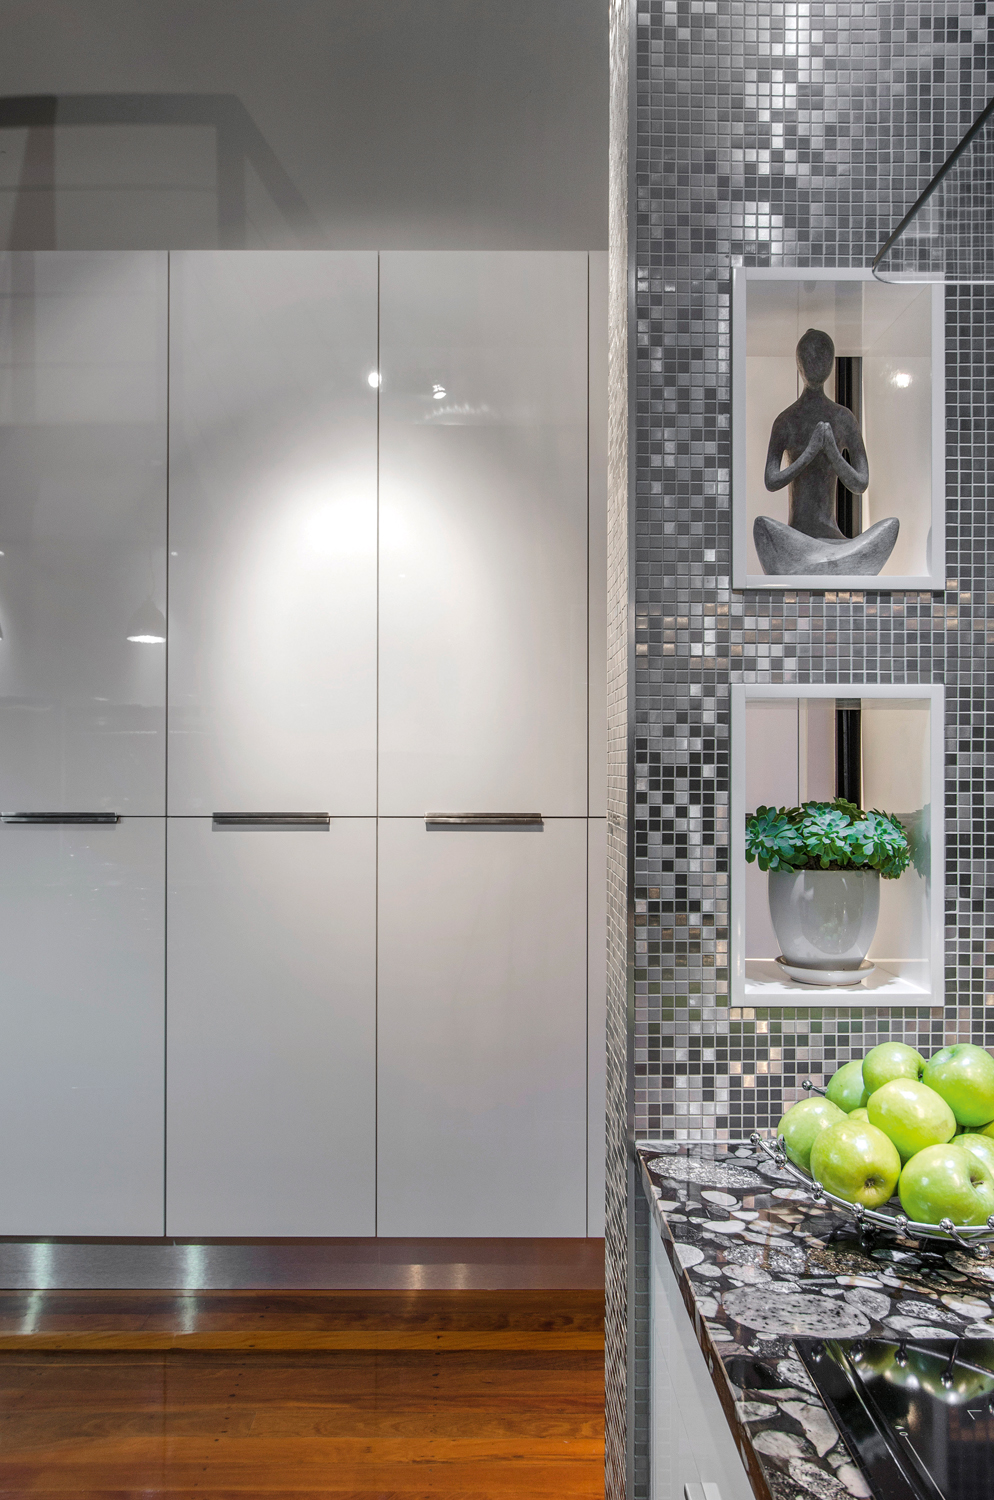 A tiny kitchen that cleverly fits storage and appliances